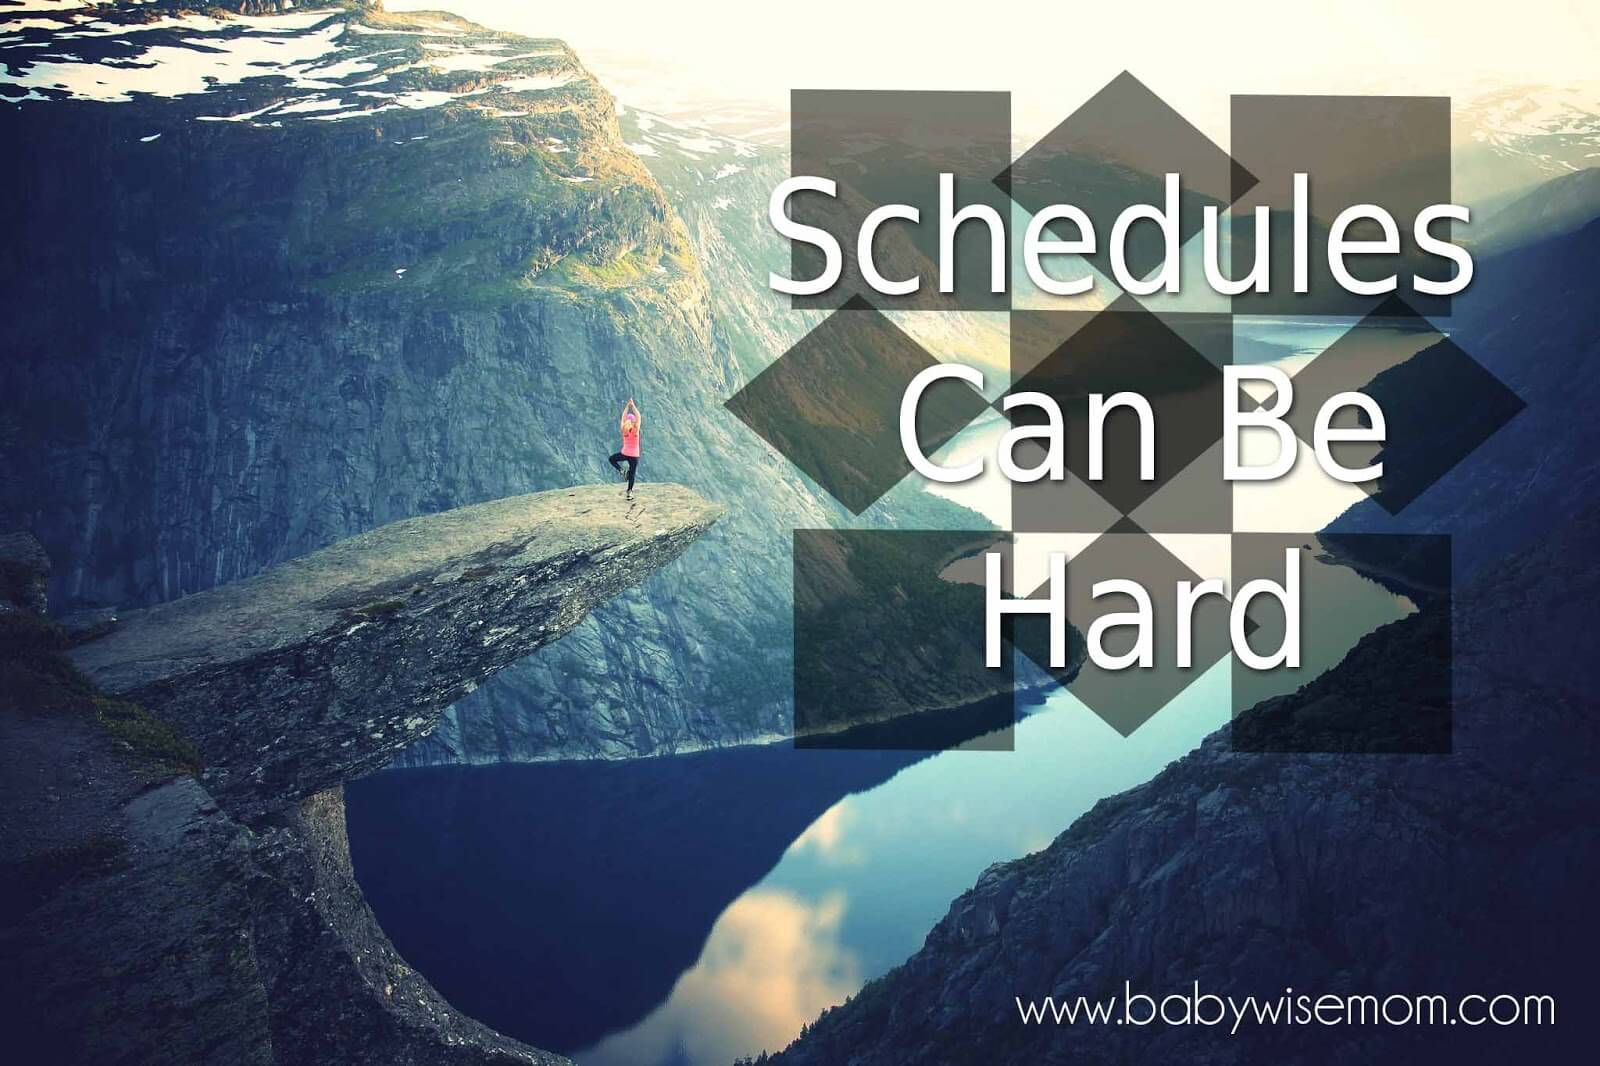 Parenting on a Schedule Can Be Hard. There can be rules to follow. You don't go anywhere you just feel like it. Even so, the difficulty is worth the benefits of a schedule.